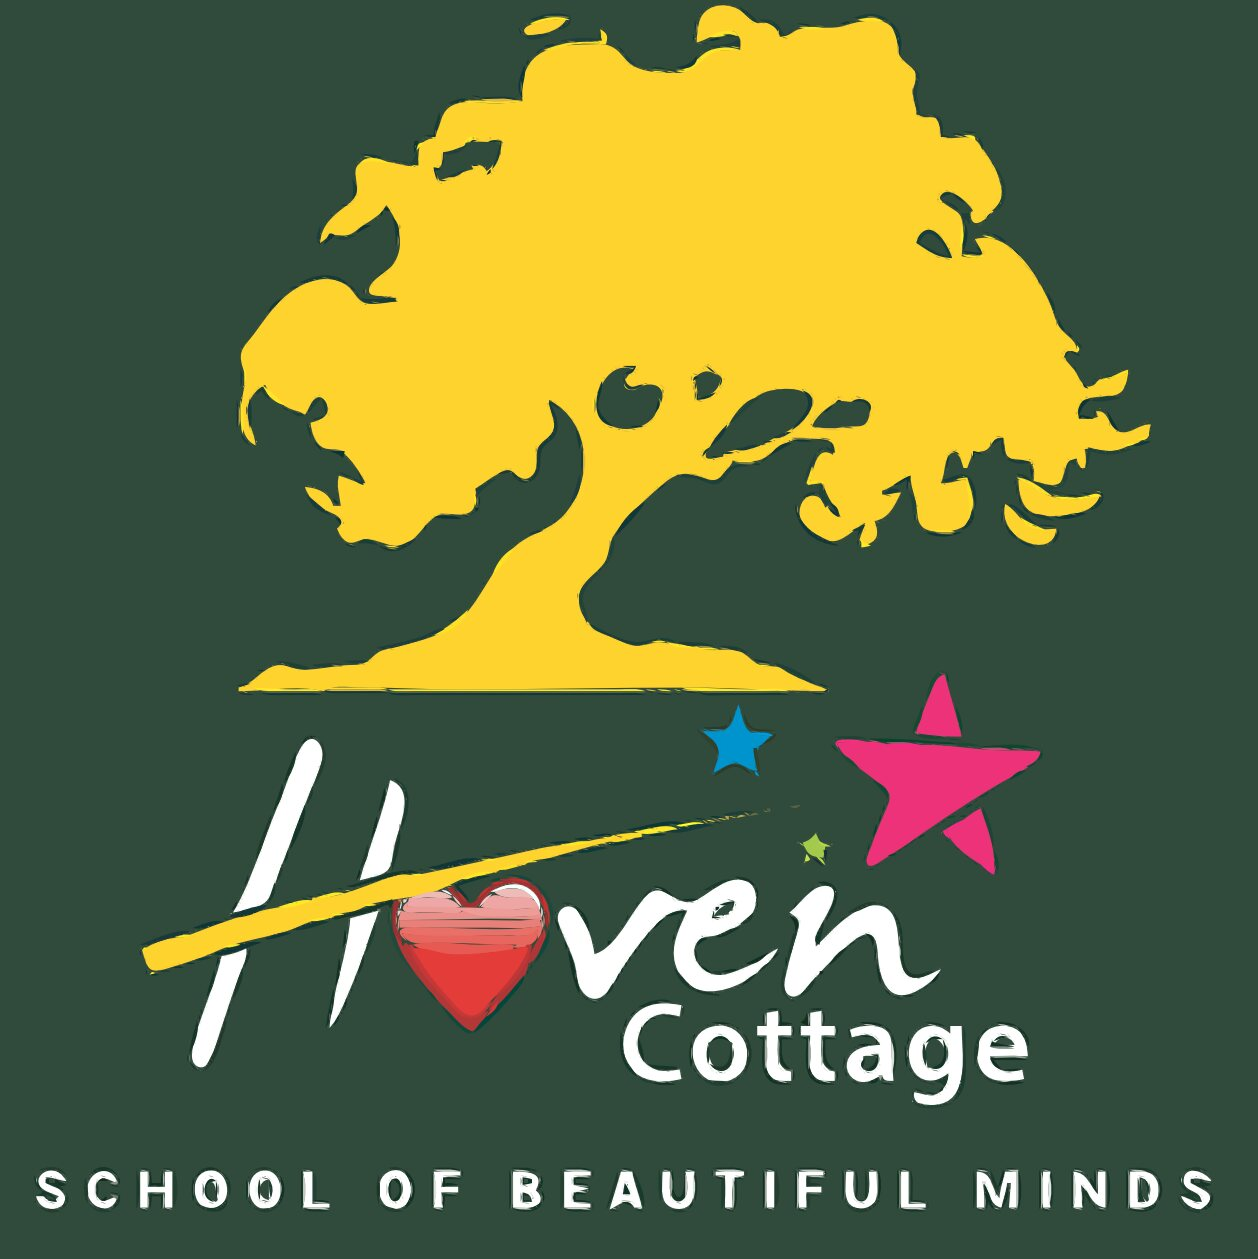 Haven Cottage School